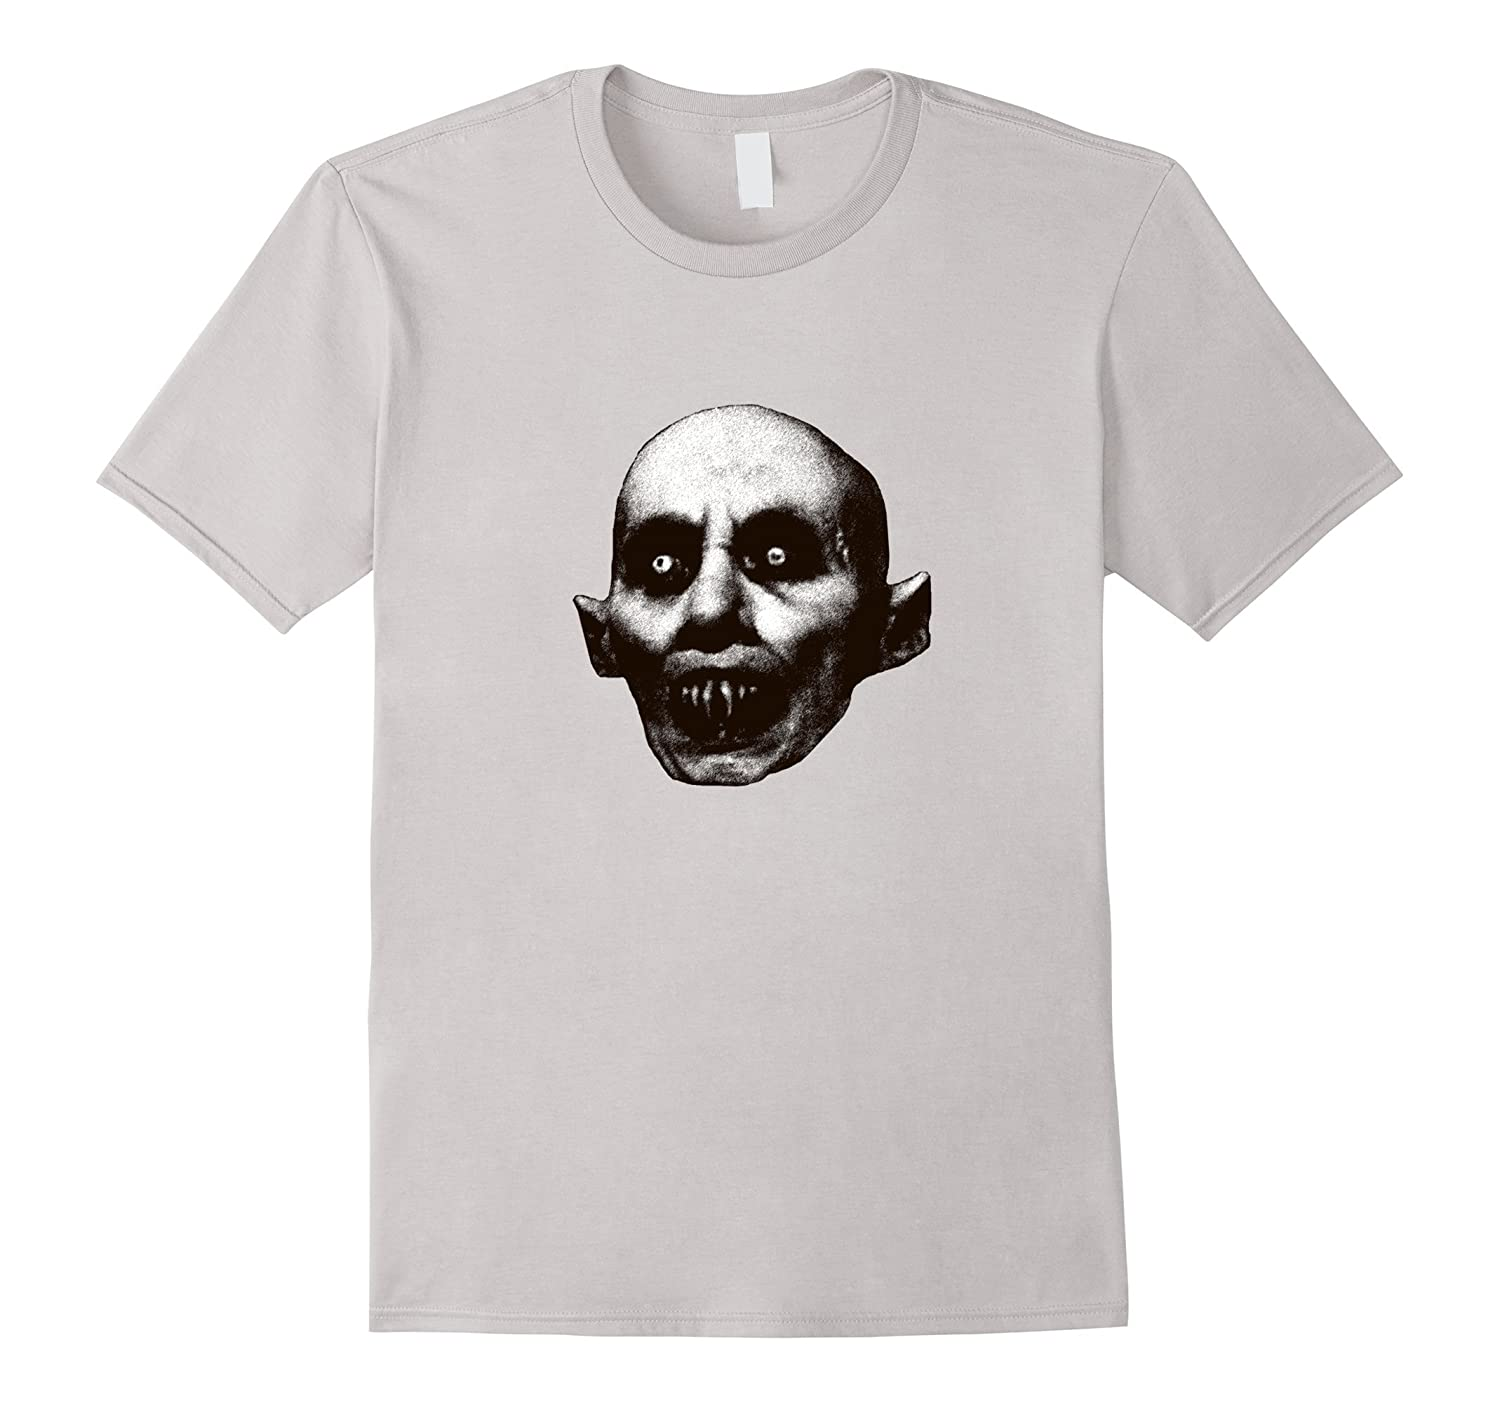 Nosferatu the Vampire classic horror t-shirt-PL